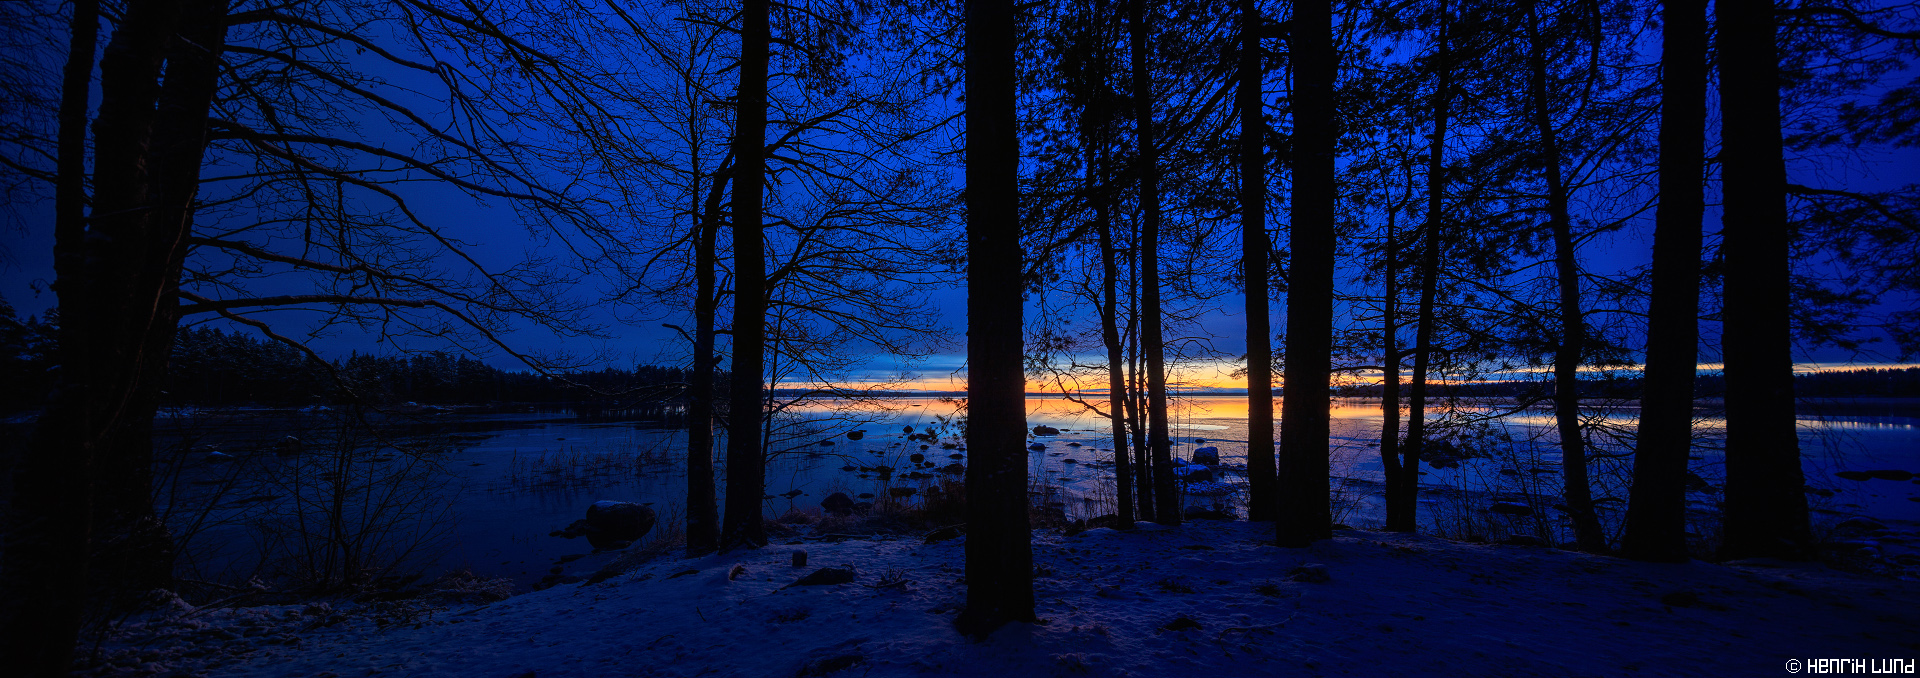 Panoramic view over the first snowy lakelandscape in Tommolansalmi, Mäntyharju. November 2015.